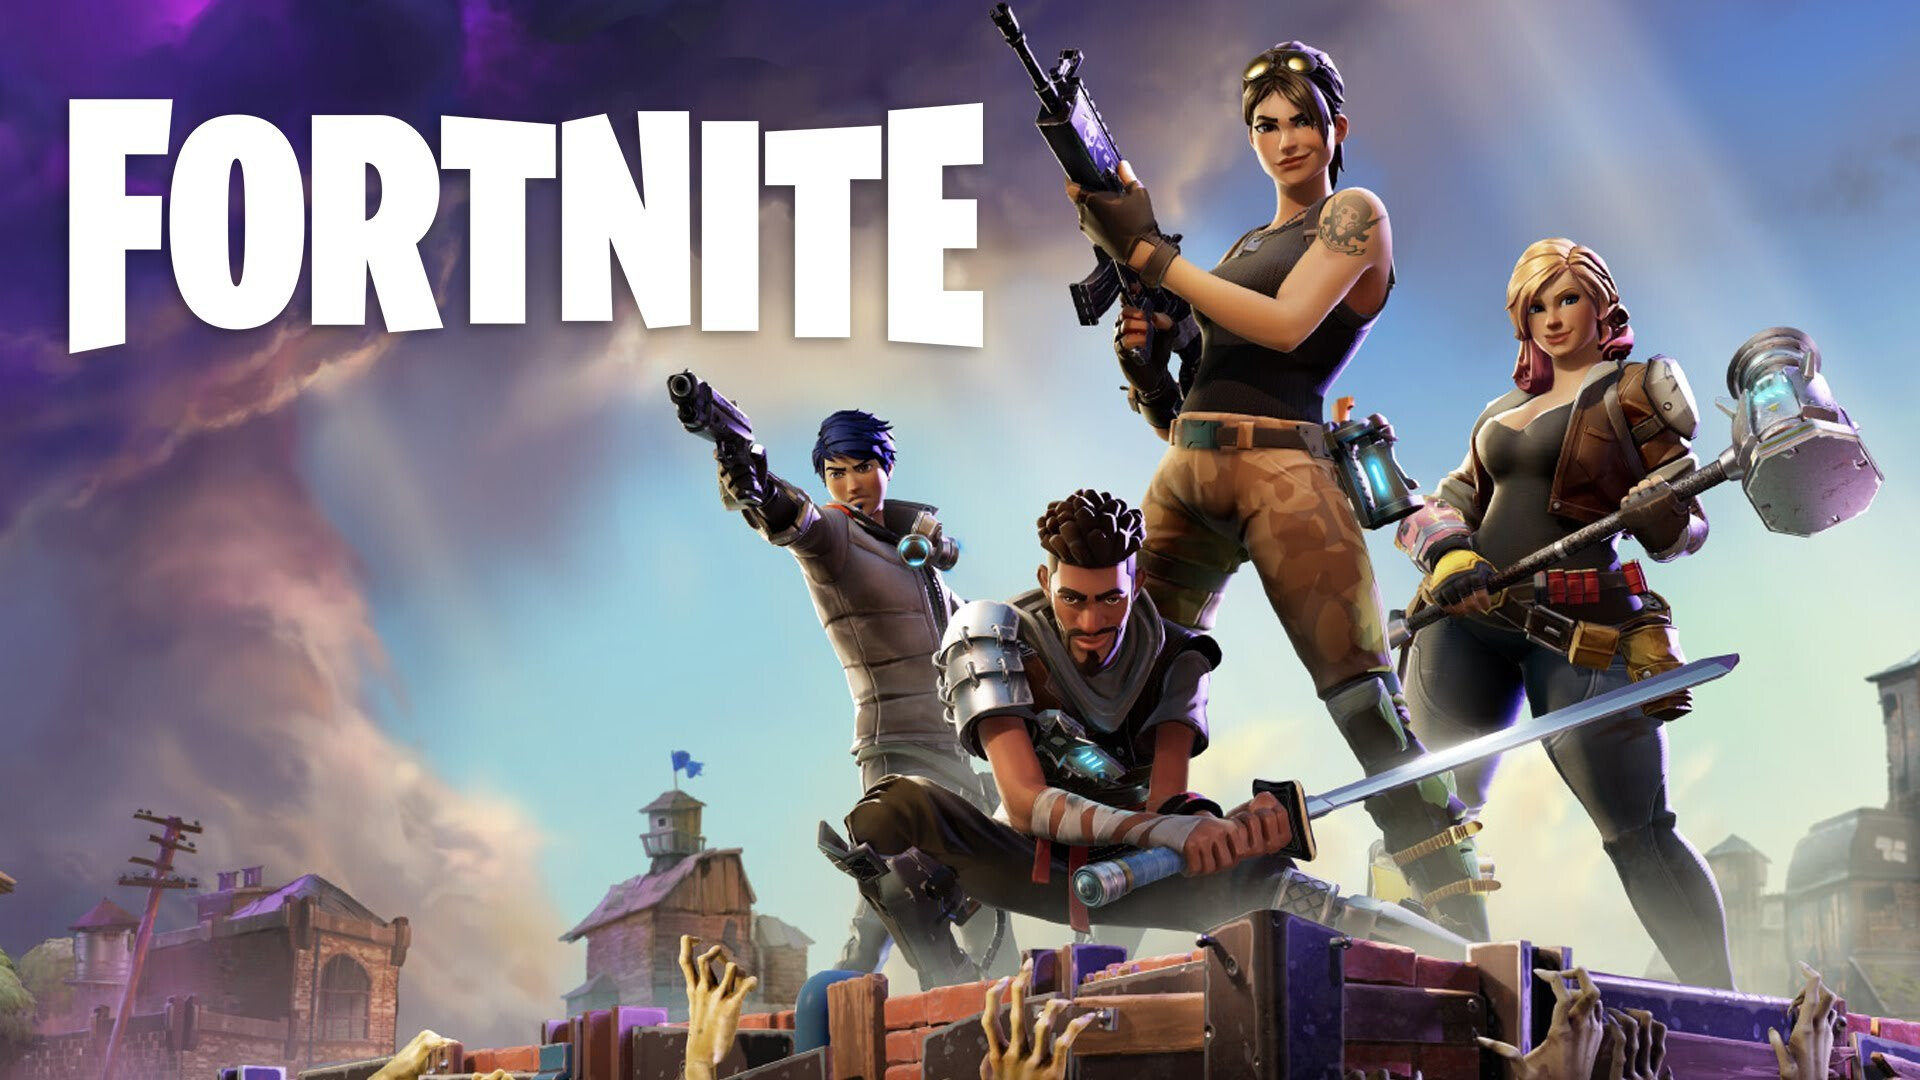 Fortnite tips & tricks: how to dominate the battle royale on